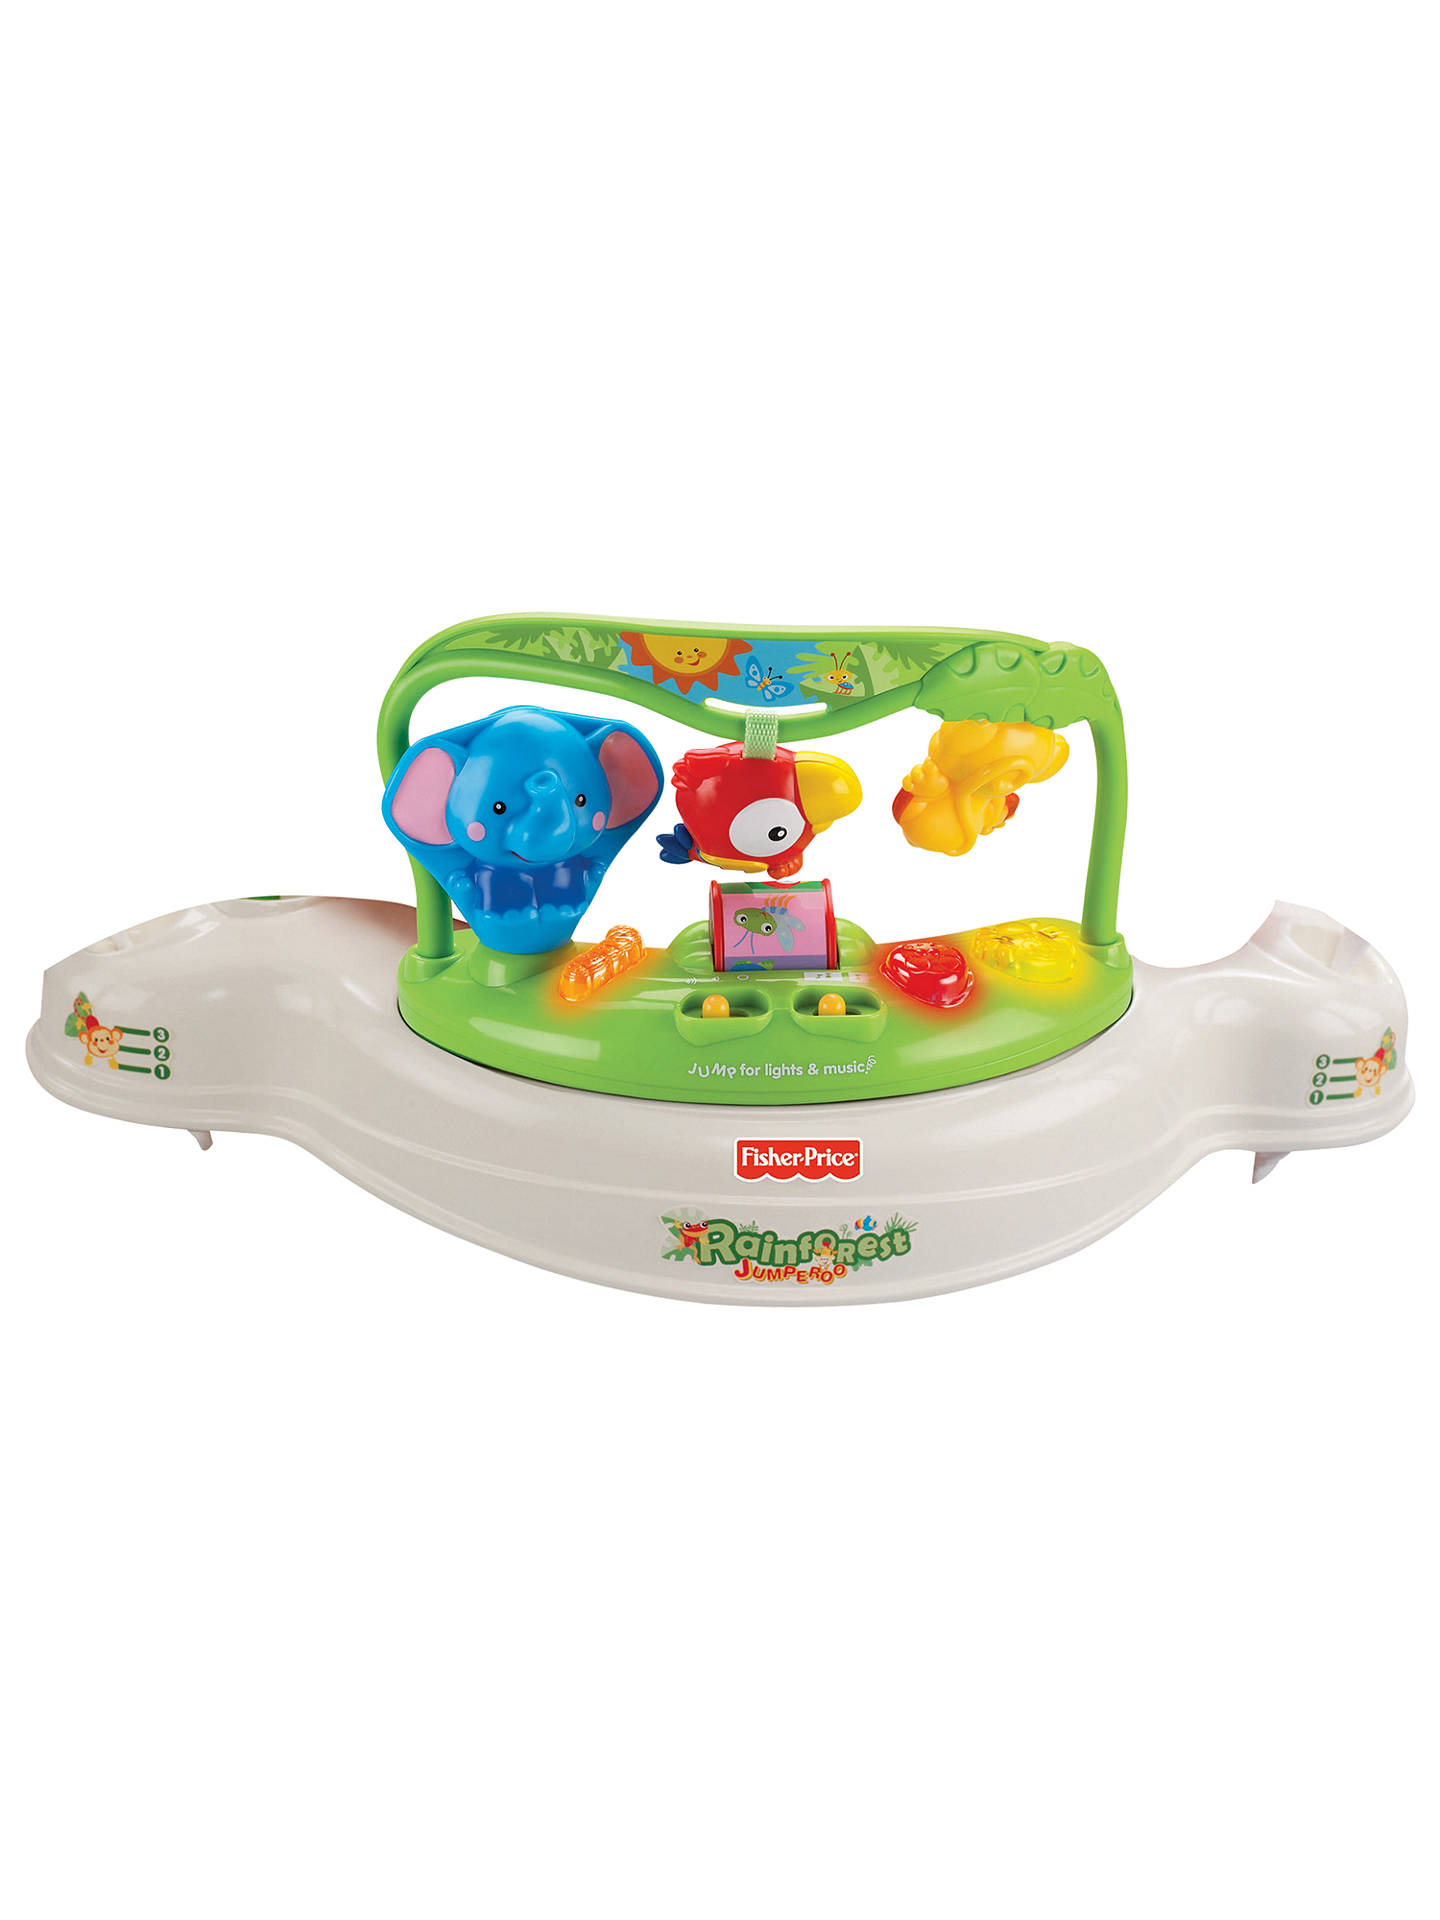 BuyFisher Price Rainforest Jumperoo Online at johnlewis.com